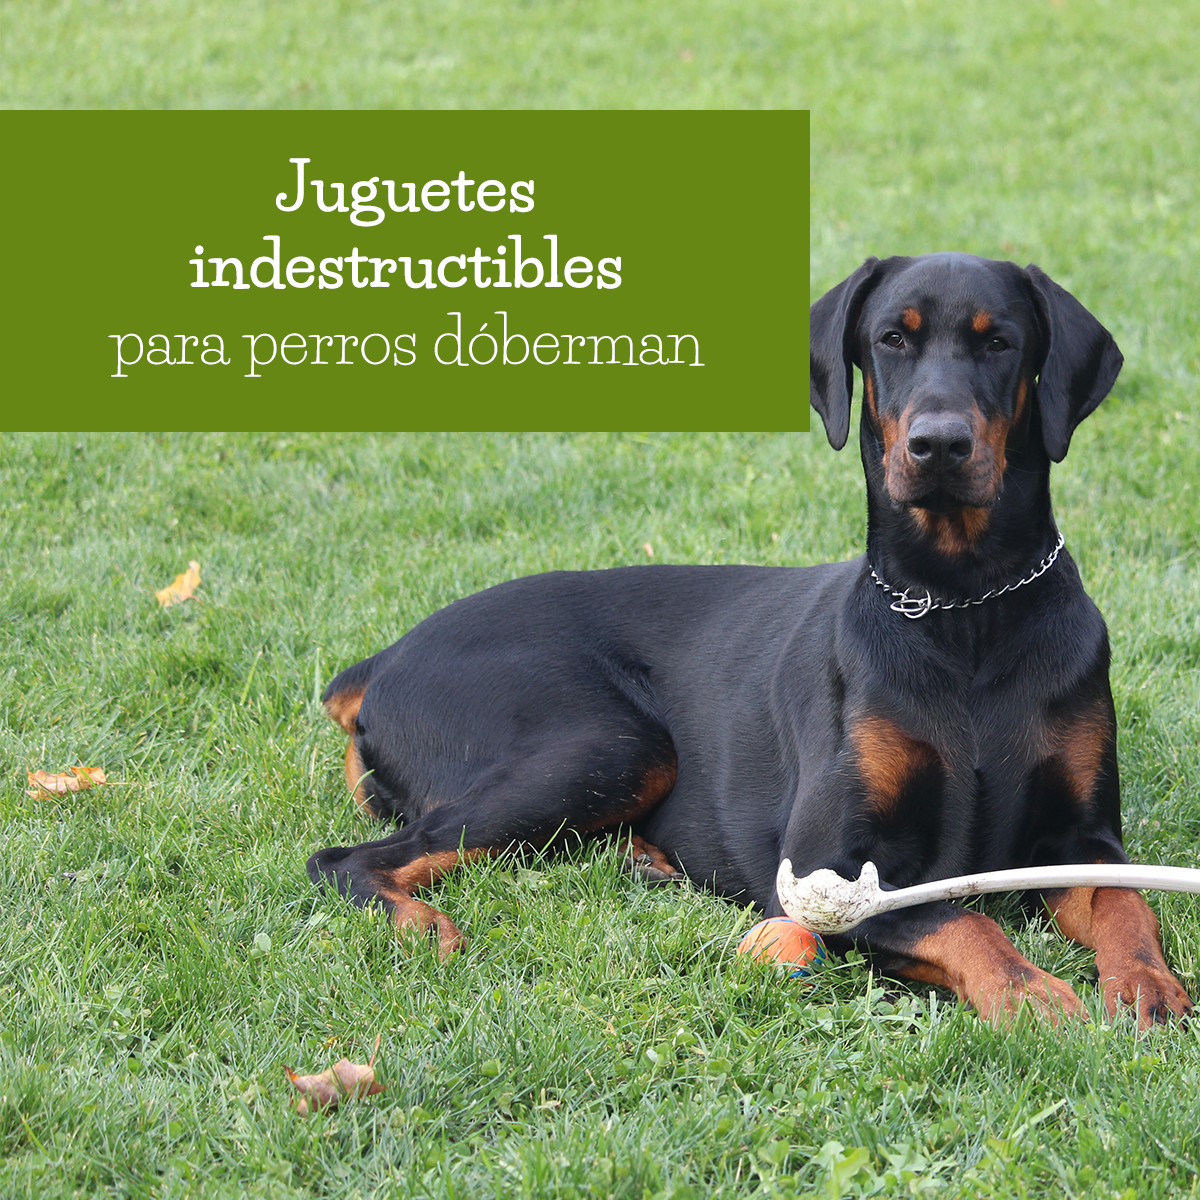 juguetes indestructibles para doberman